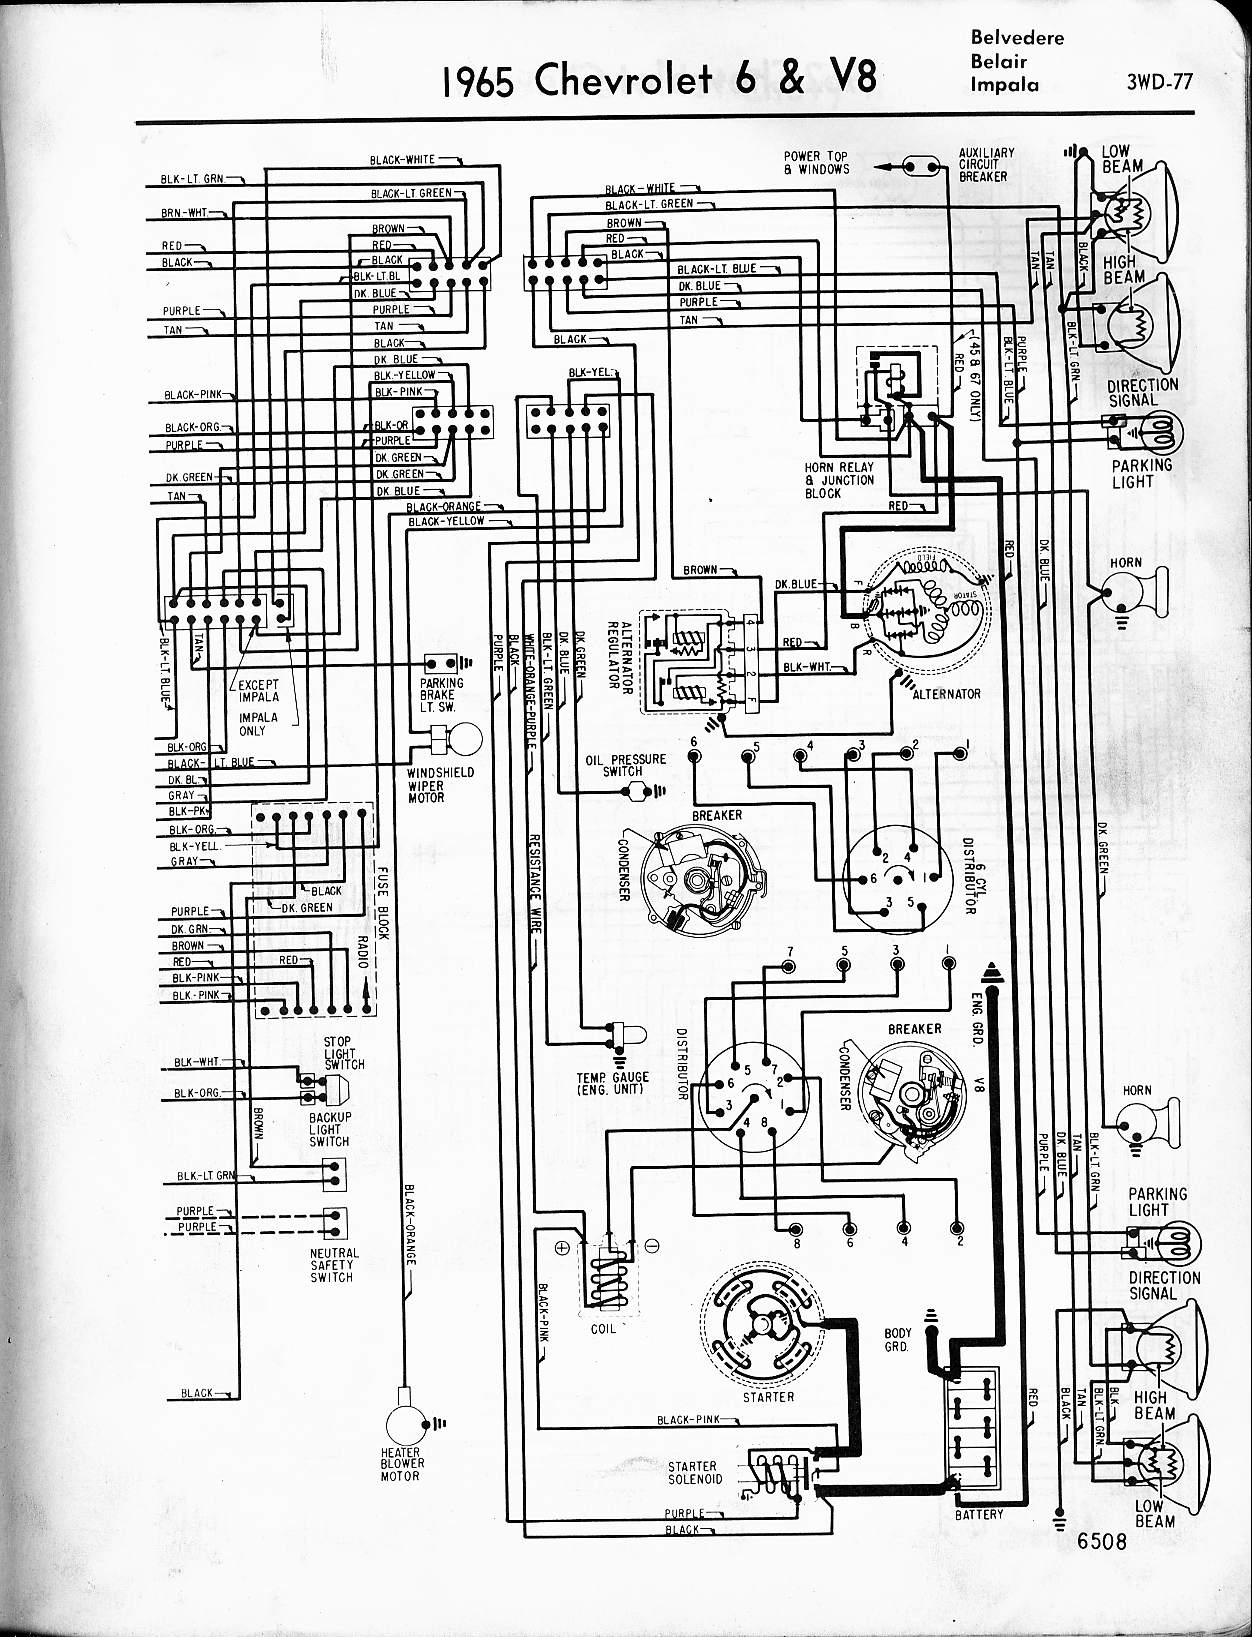 MWireChev65_3WD 077 chevy diagrams 1965 el camino wiring diagram at bayanpartner.co